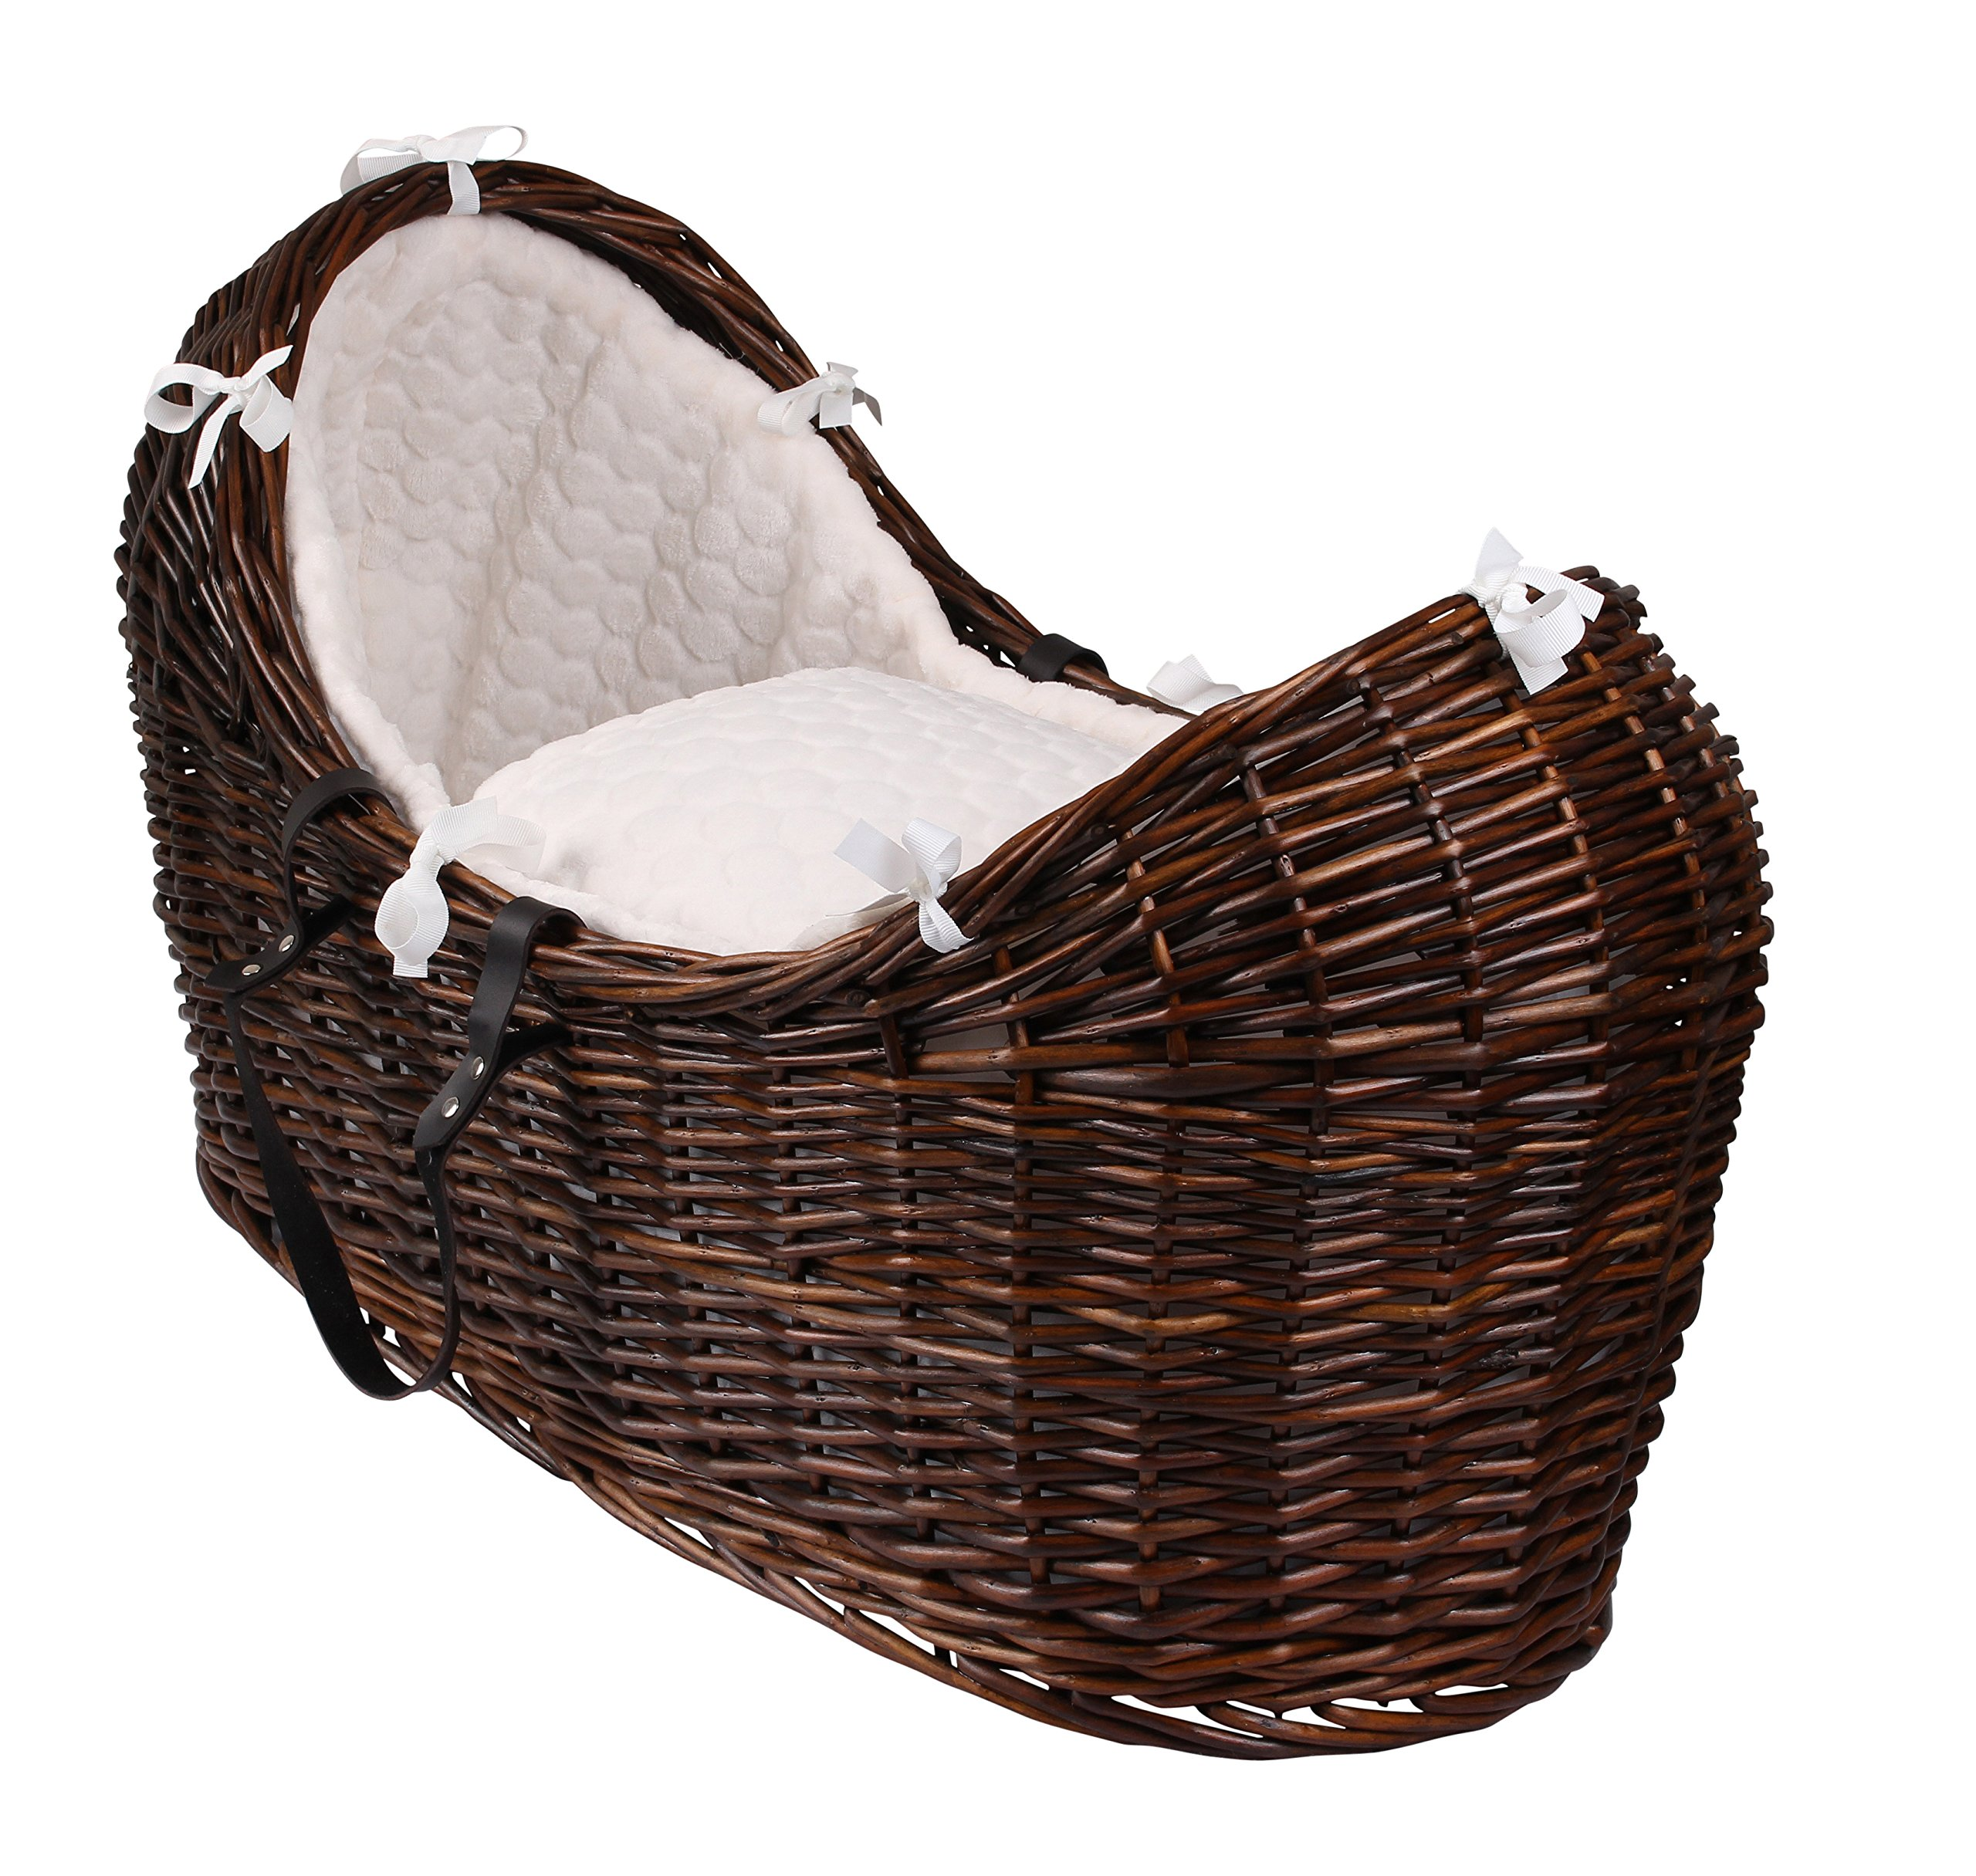 Clair de Lune Marshmallow Noah pod (Cream, Dark) Clair de Lune Made in the UK Soft, 100% Polyester Marshmallow fabric Available in a range of fabrics and Baskets 1